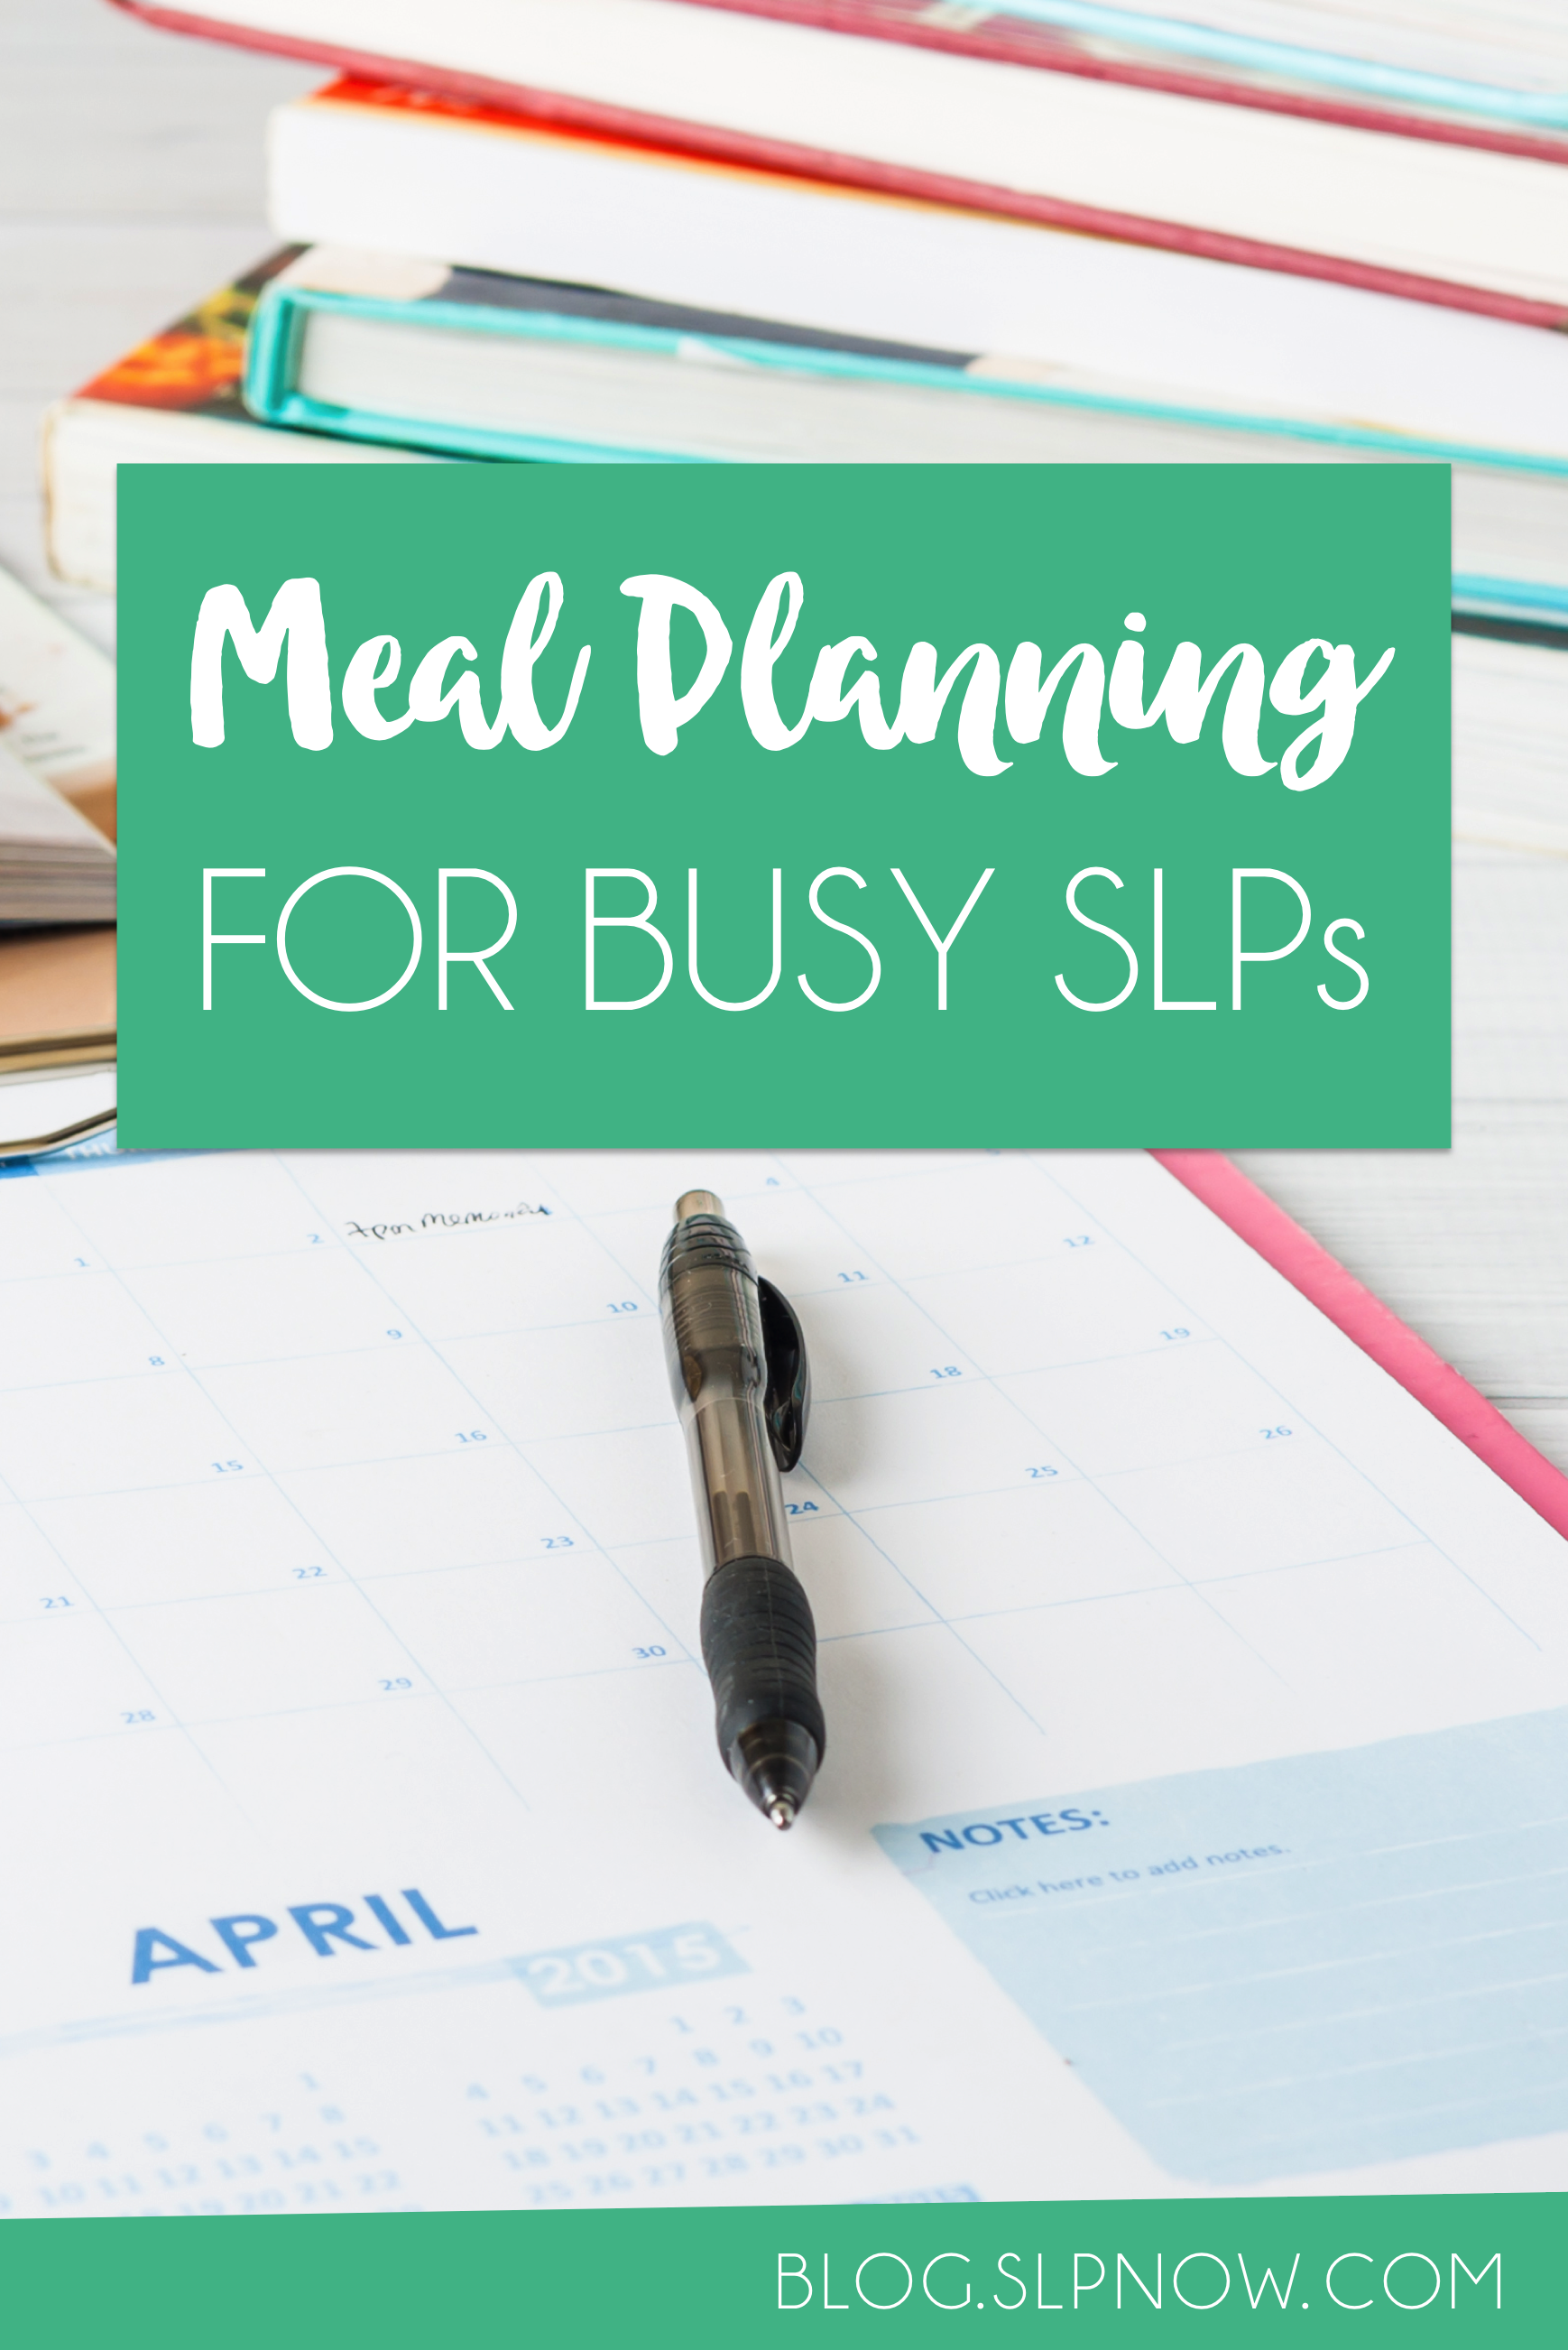 Trello is an excellent tool for your to-do list, but did you also know that you can use it to create easy meal plans? I share how I use it to create my meals plans in this blog post, as well as a list of benefits that I see in using Trello for this purpose! Get all the details in this post!